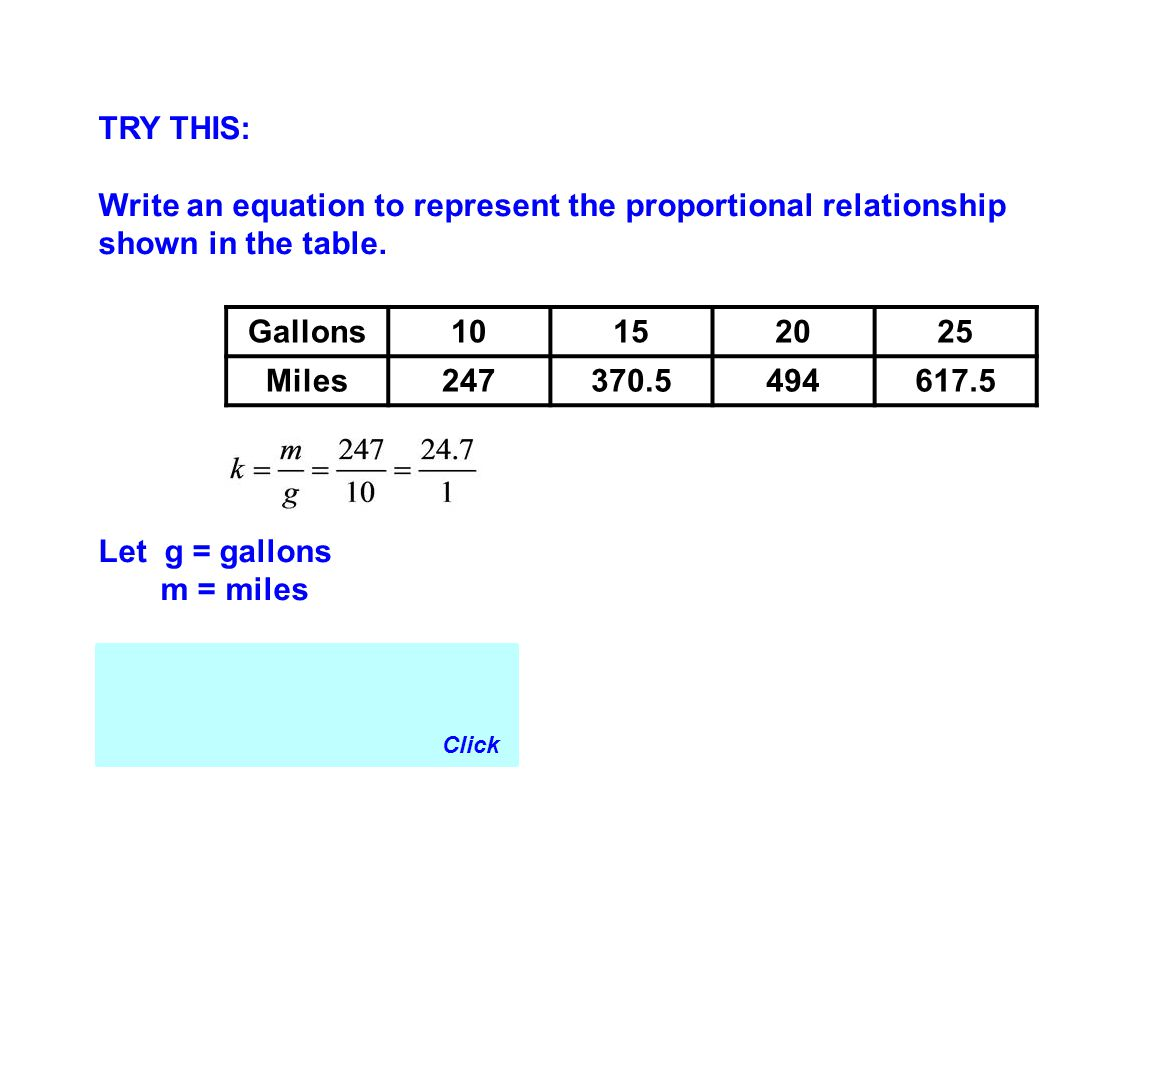 TRY THIS: Write an equation to represent the proportional relationship shown in the table. Let g = gallons.